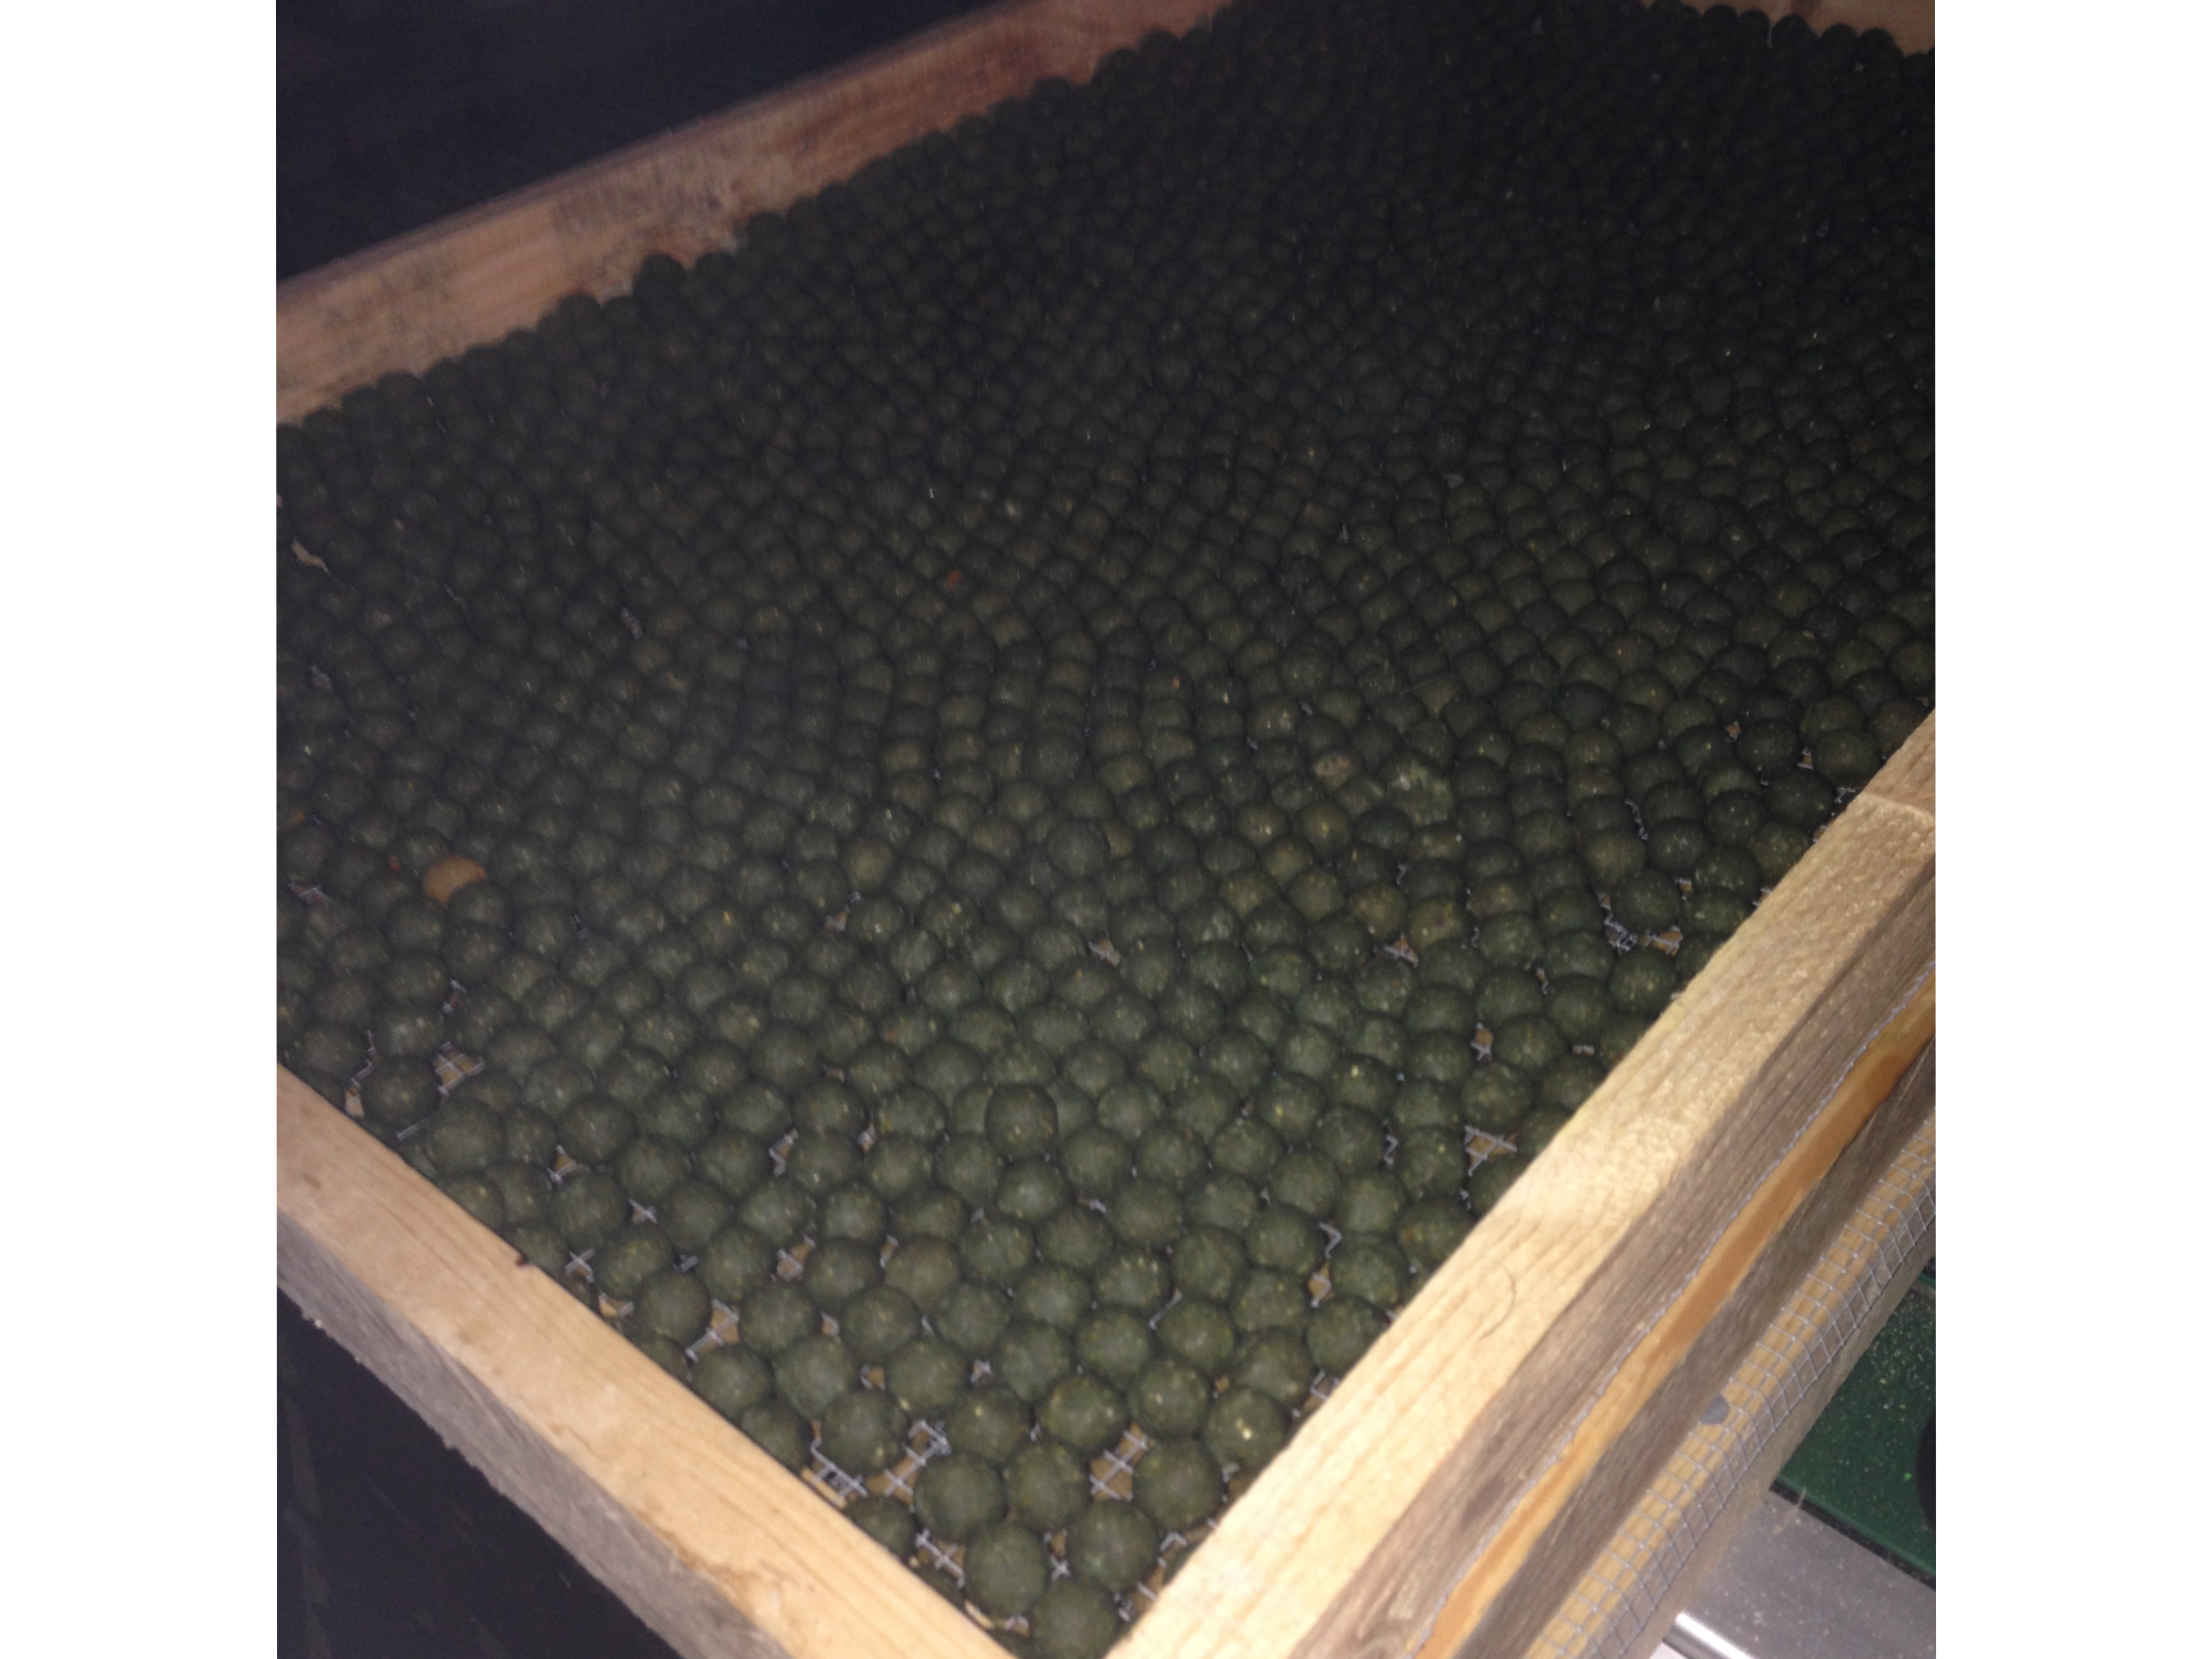 5kg of Musselberry drying out